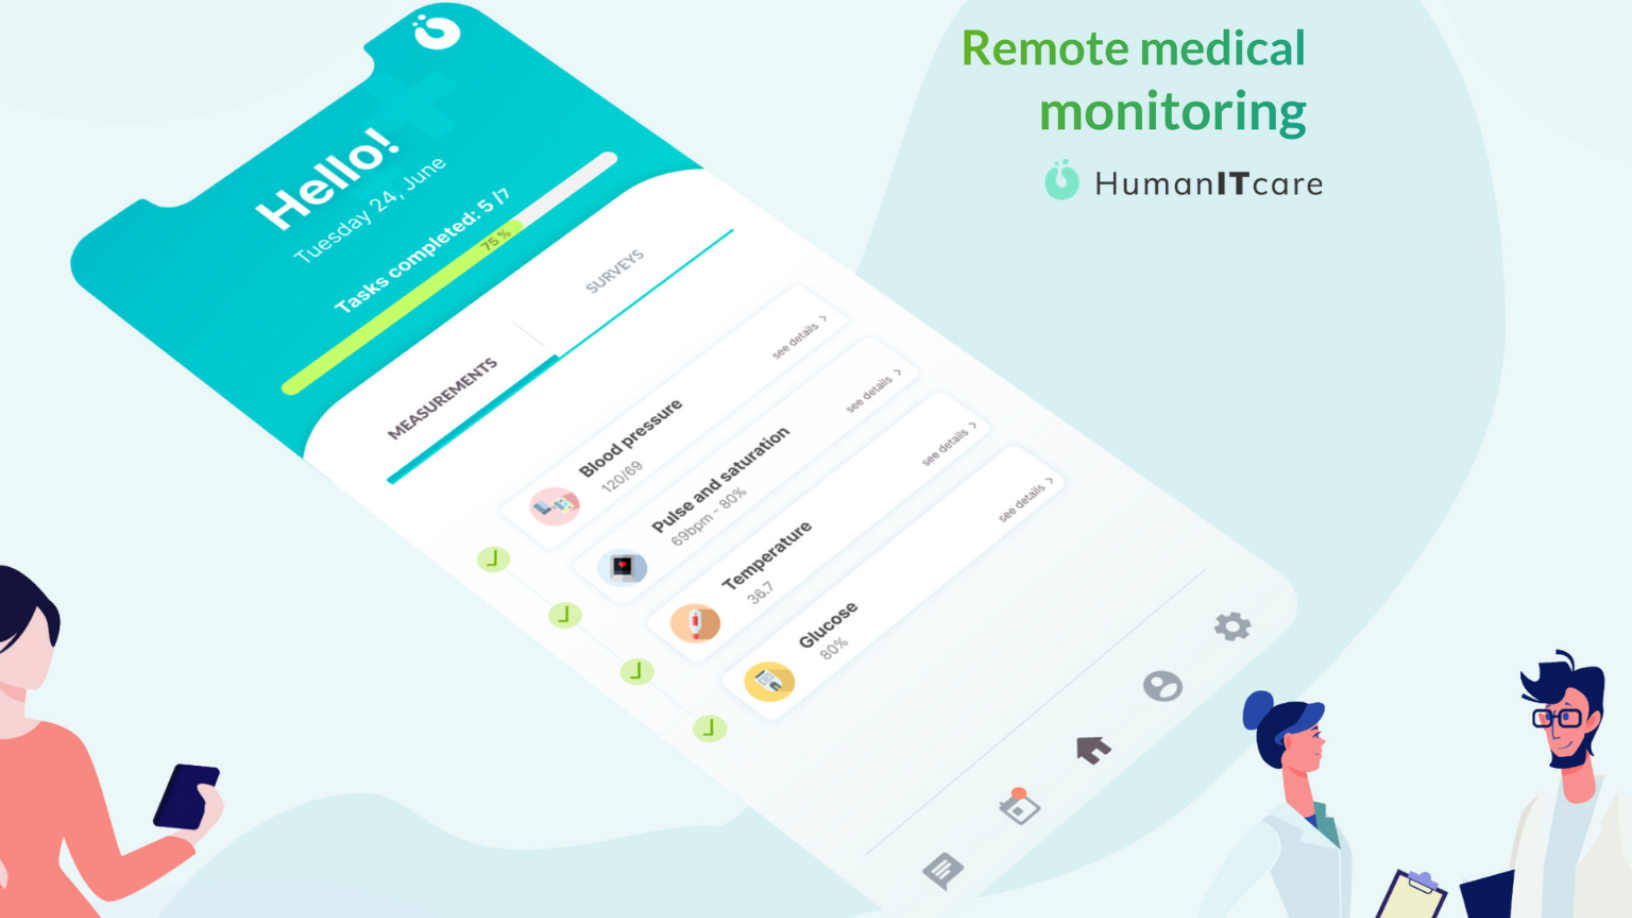 HumanITcare: Covid-19 spurs demand for telemedicine across Spain and beyond